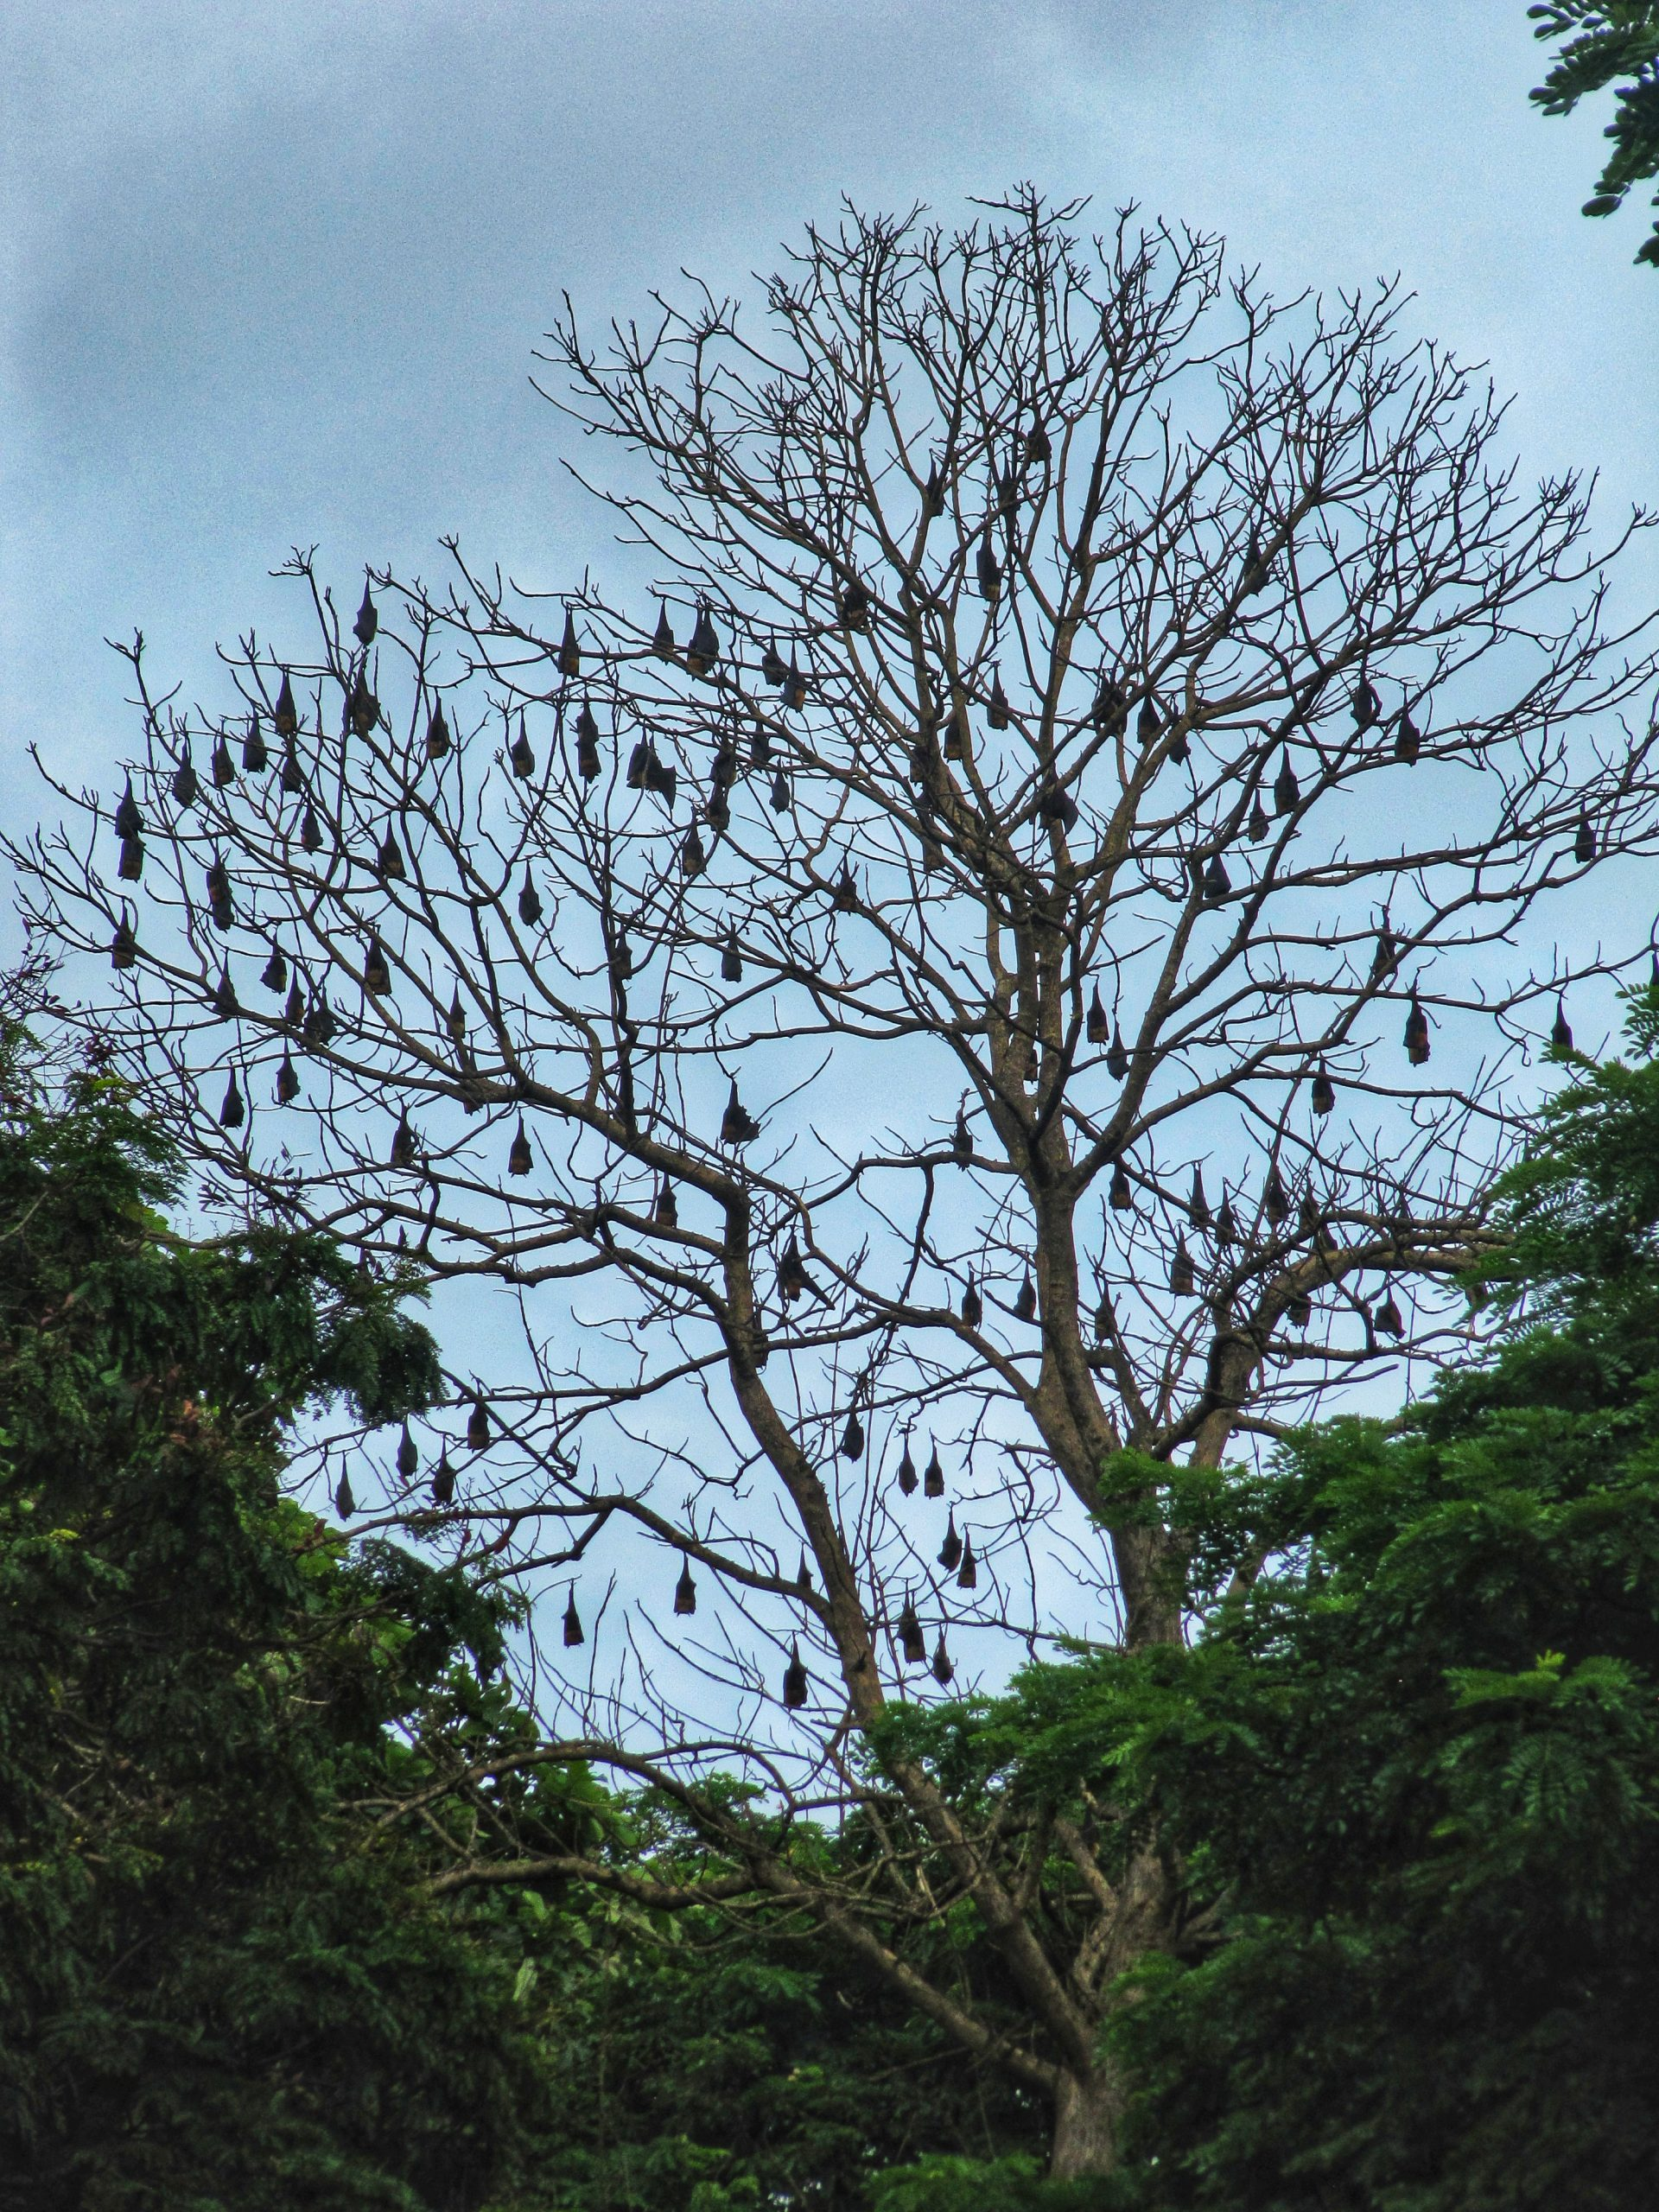 a tree with nests